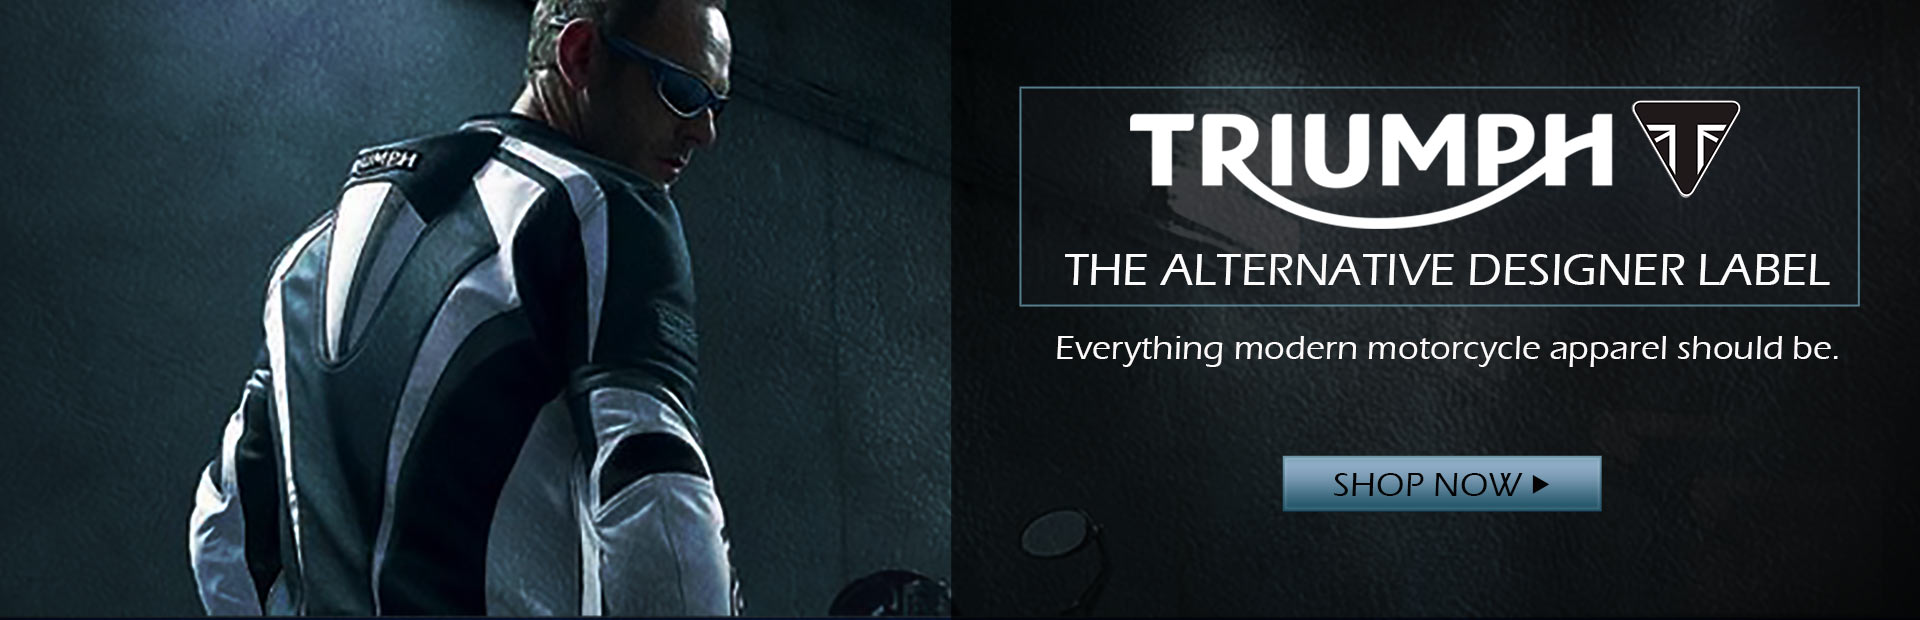 Triumph is the alternative designer label. It is everything modern motorcycle apparel should be.